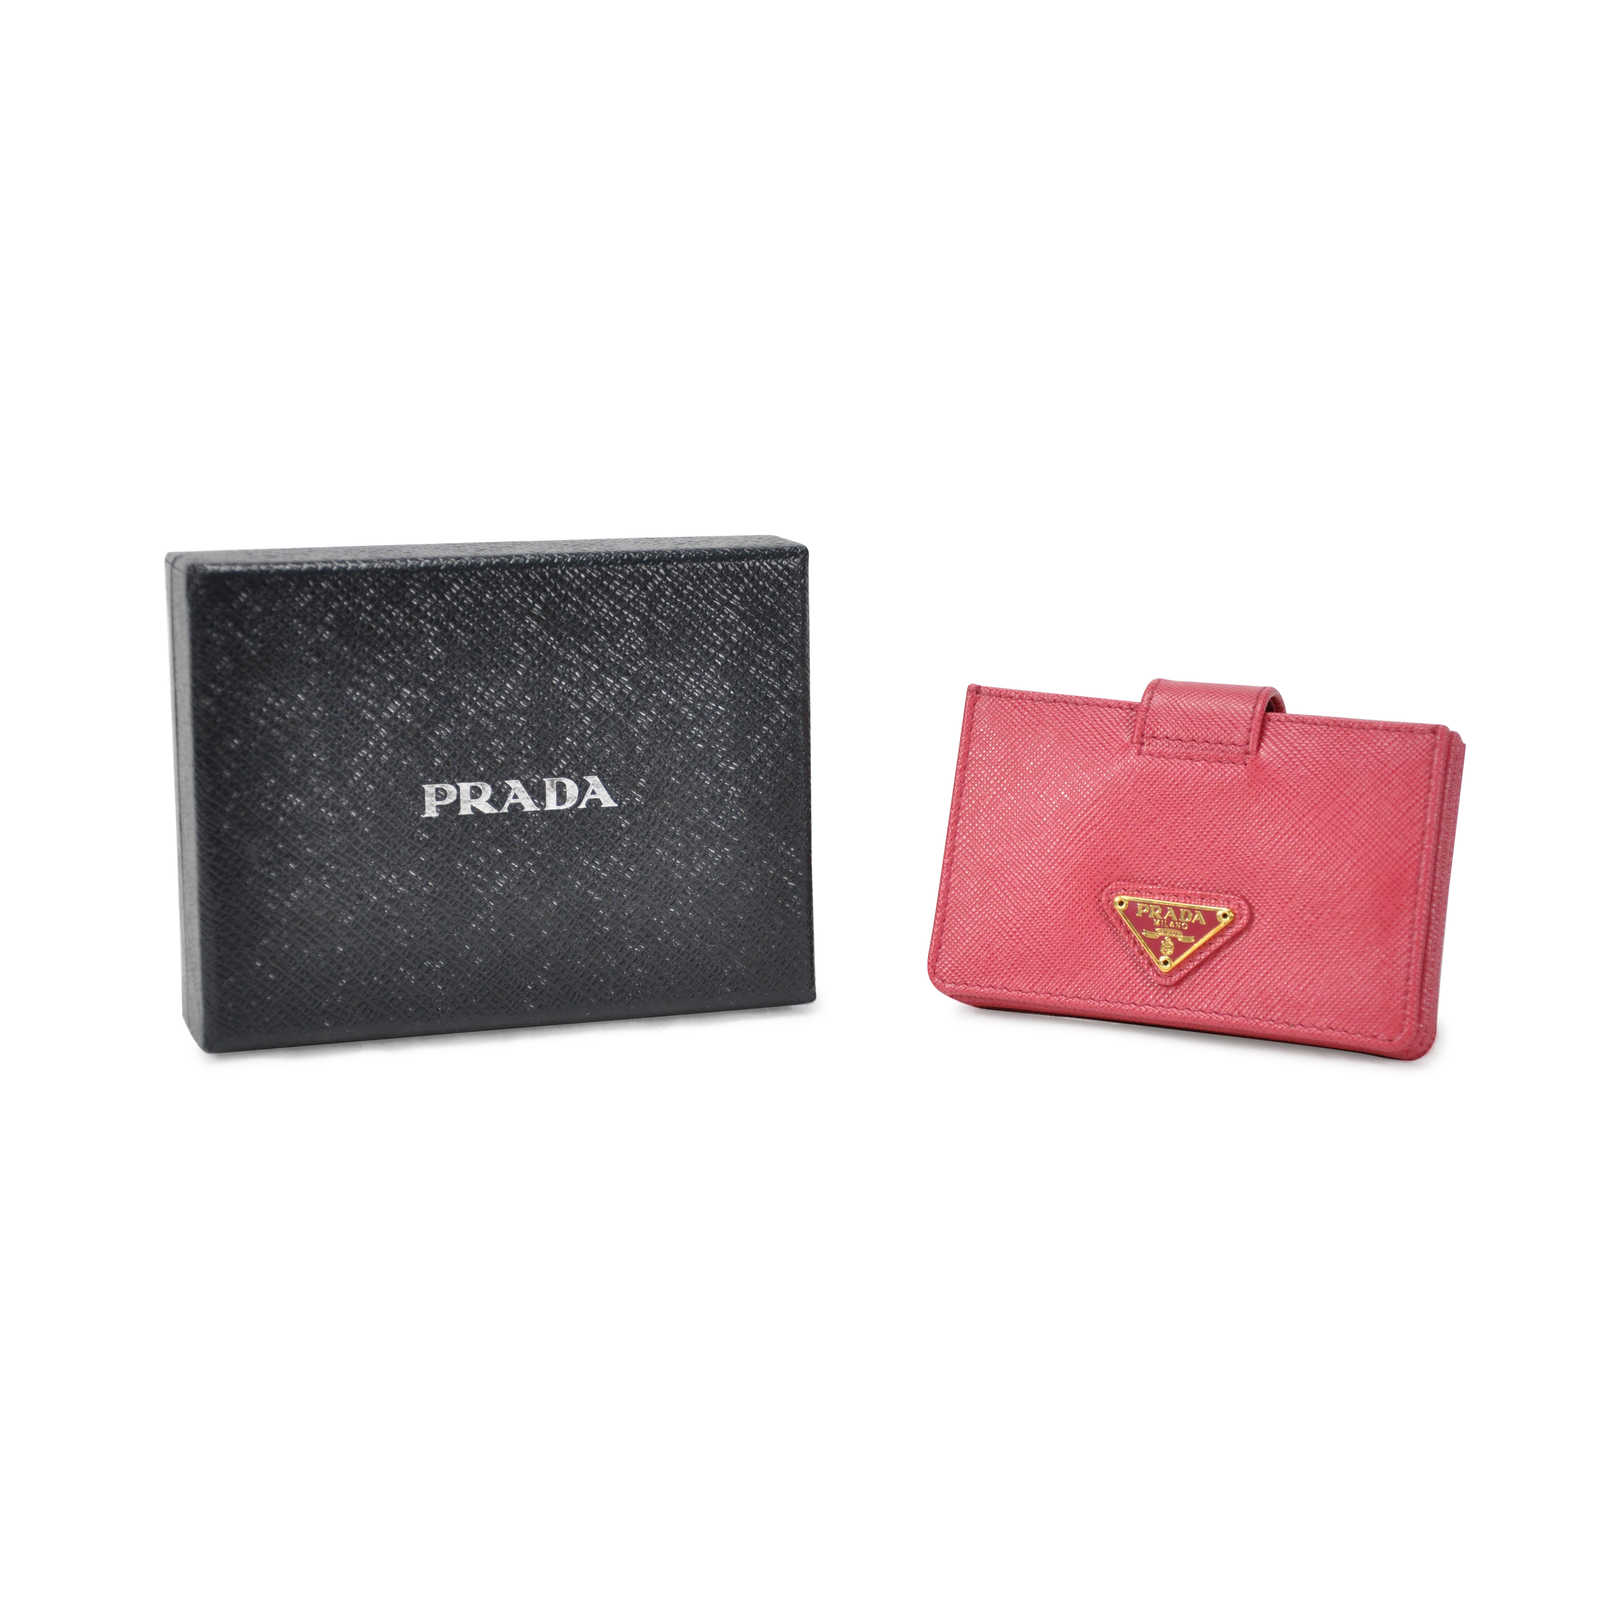 cc0824dbb671 ... closeout authentic pre owned prada business card holder pss 072 00011  thumbnail c5f9a 1bc34